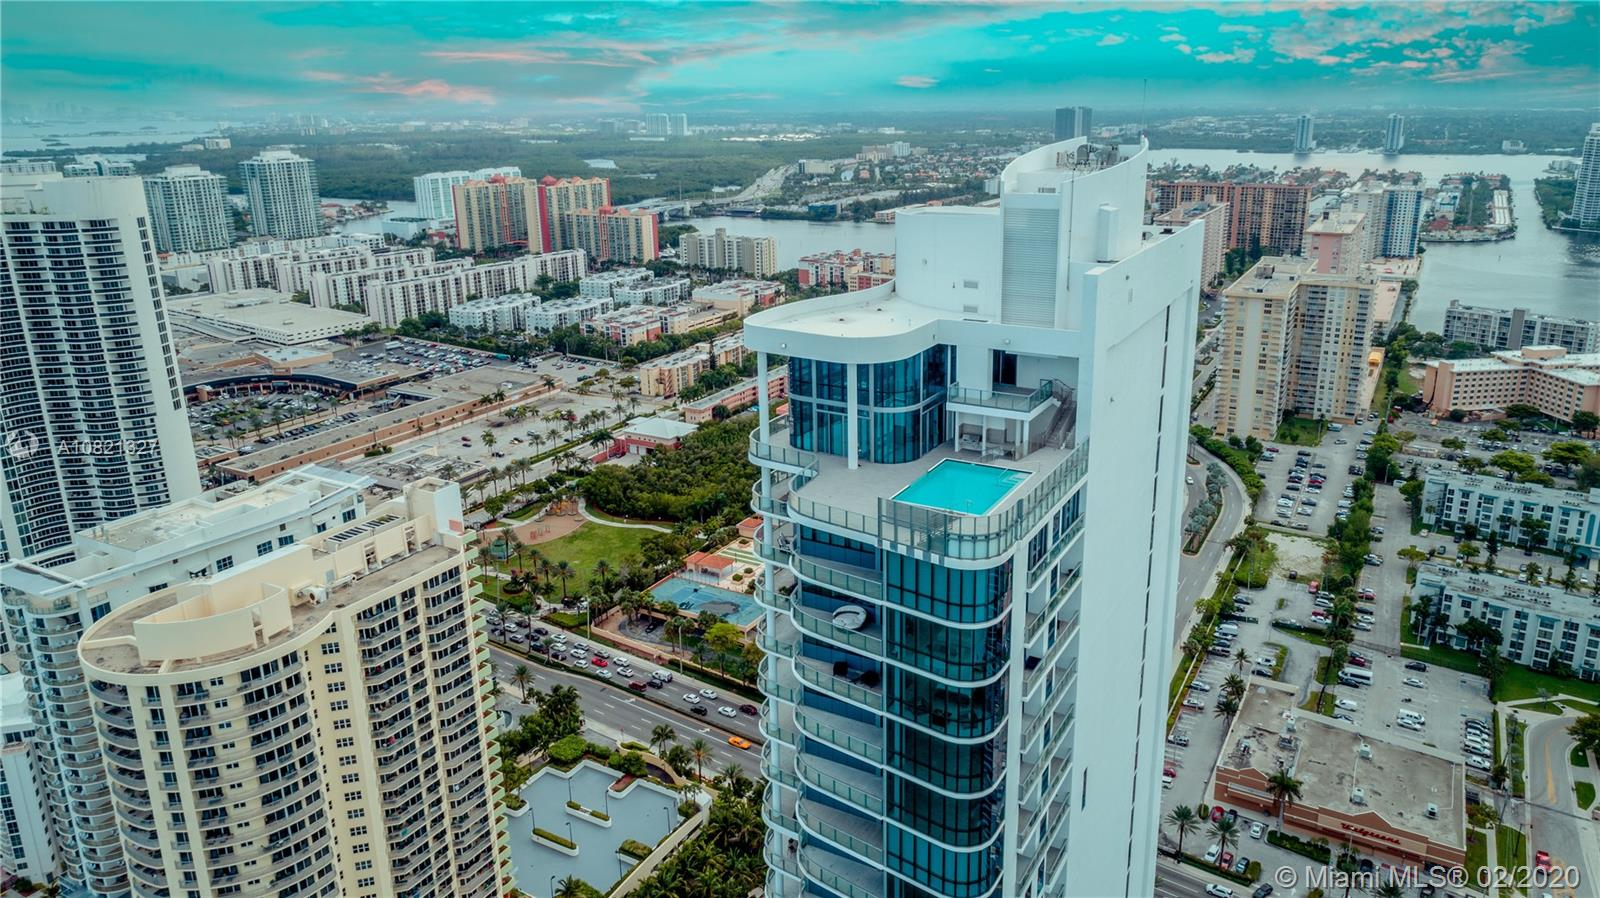 17475 Collins Ave, Unit #PH-3201 Luxury Real Estate